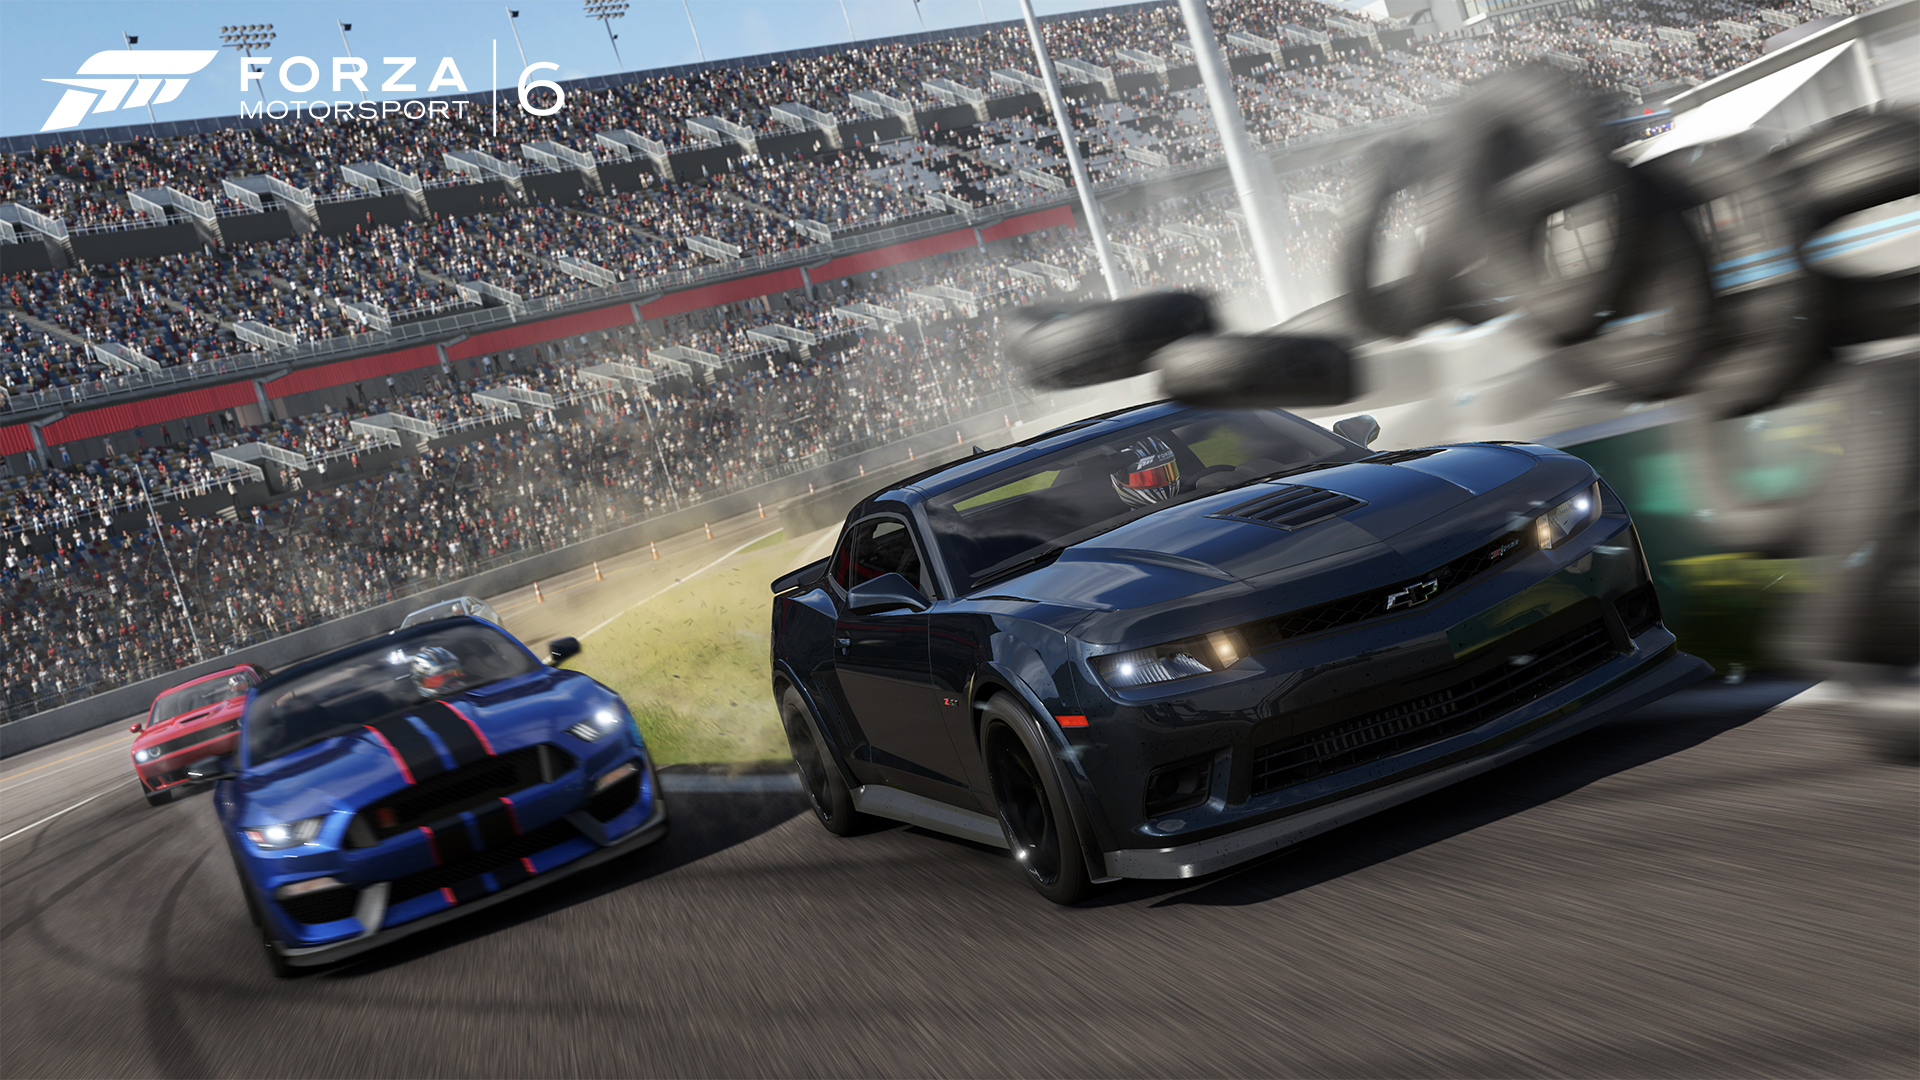 forza motorsport 6 xbox one review the one to beat usgamer. Black Bedroom Furniture Sets. Home Design Ideas